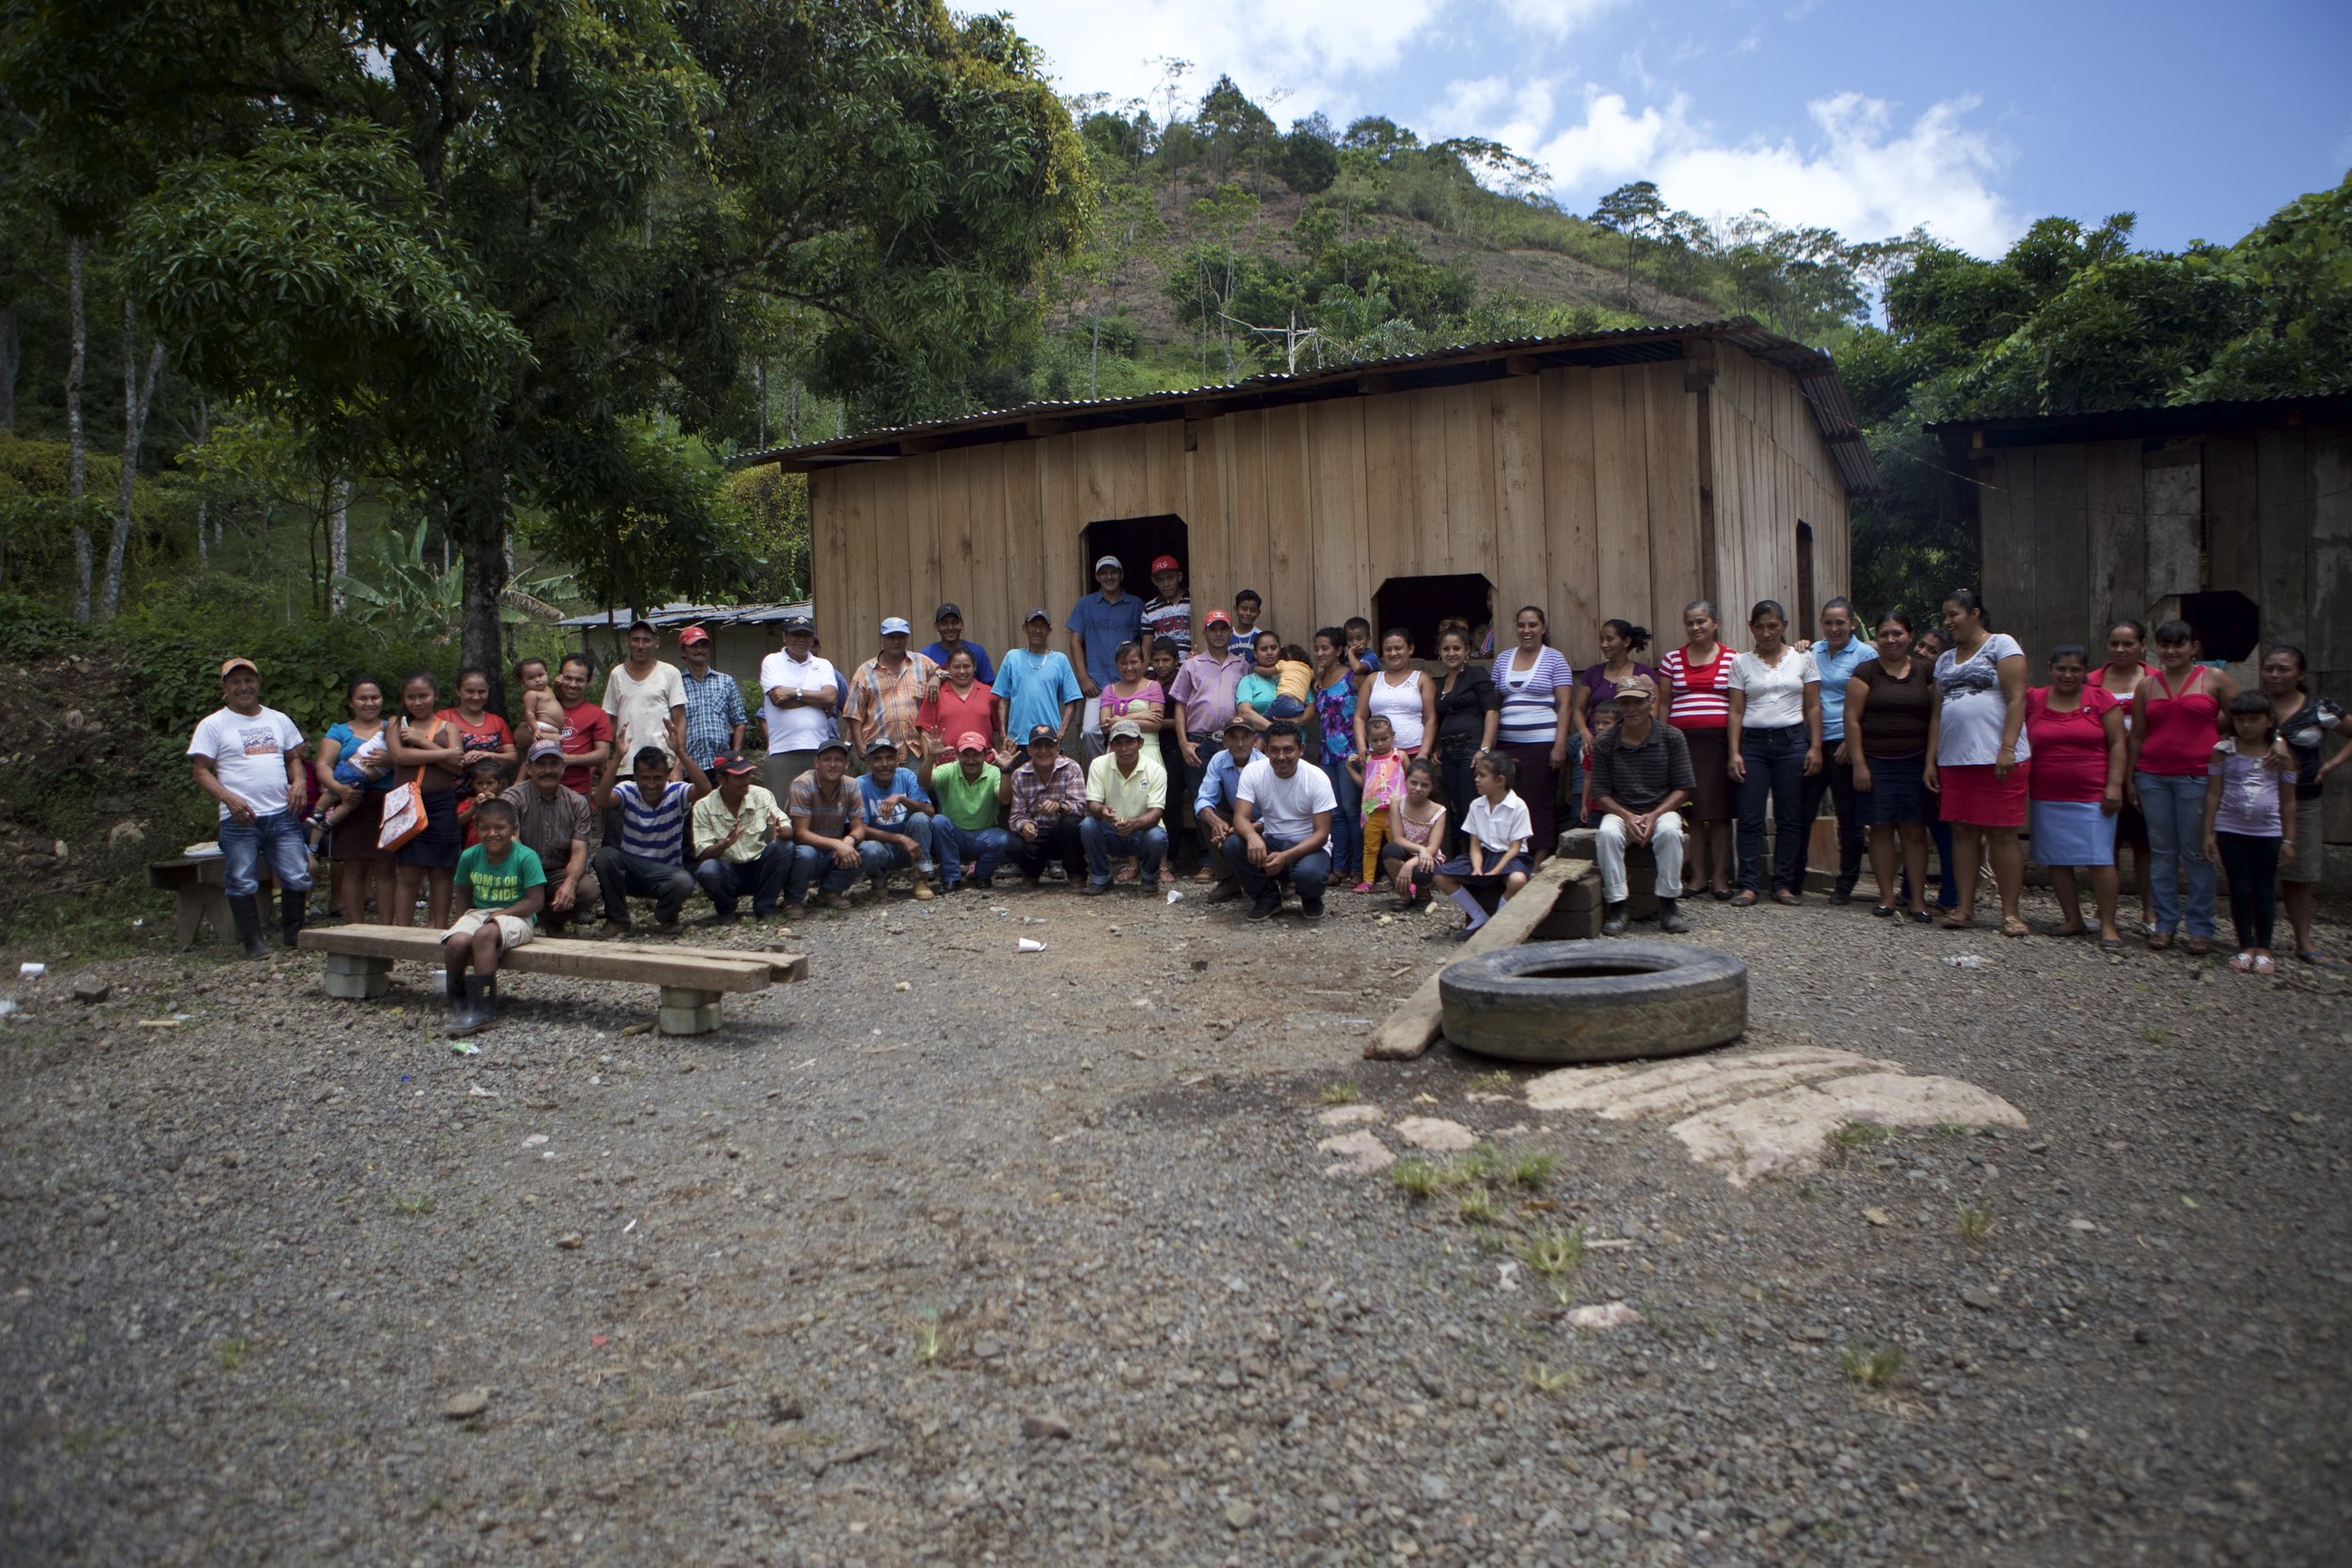 Enliven Cacao farmers and families_0769-2.jpg